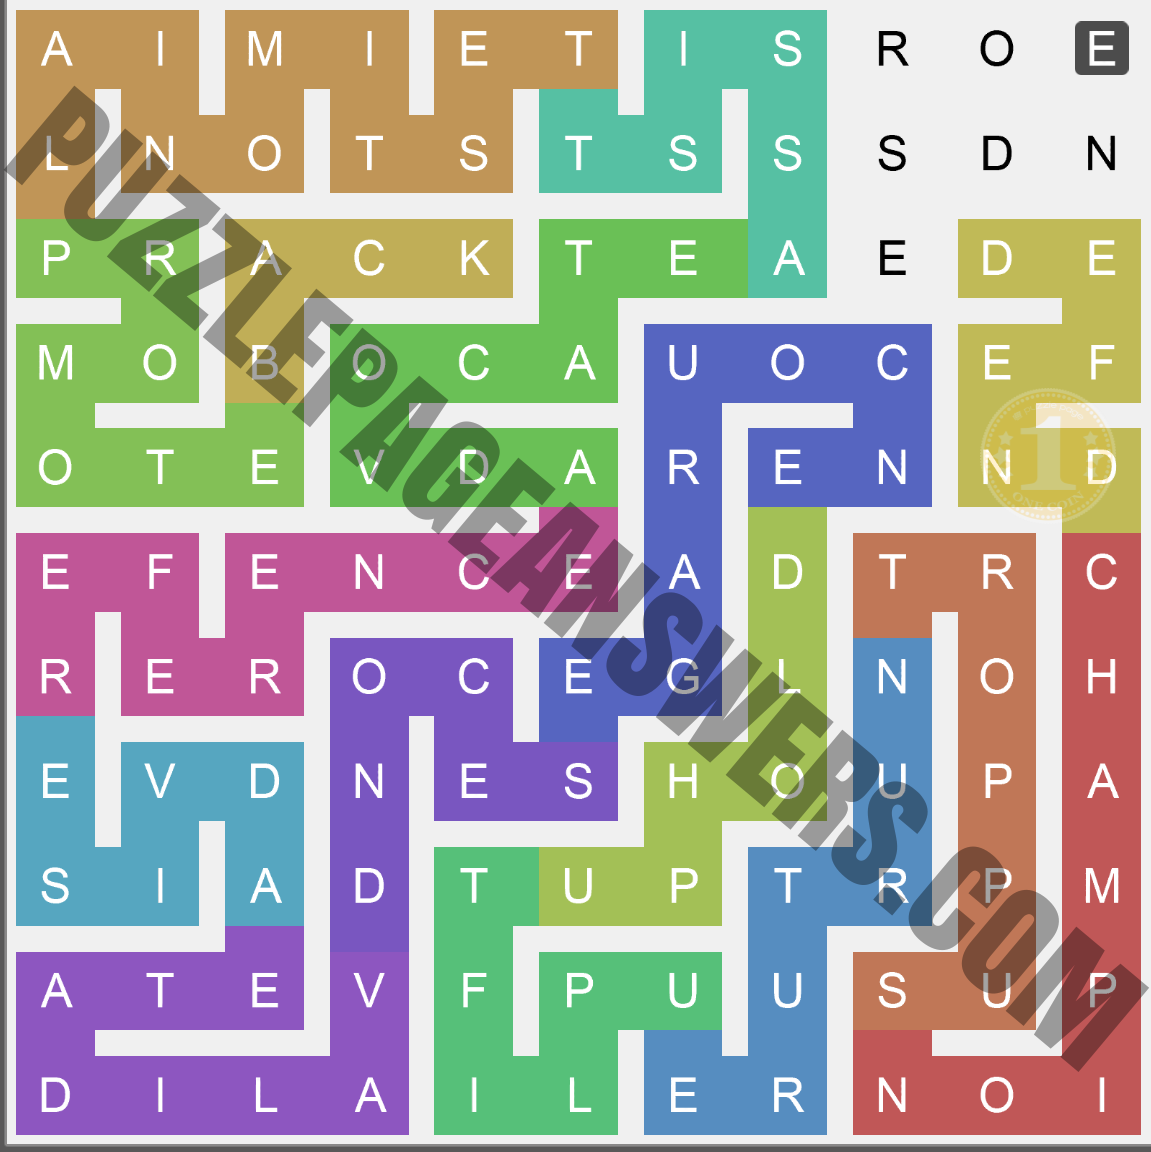 Puzzle Page Words Snake June 6 2020 Answers ...